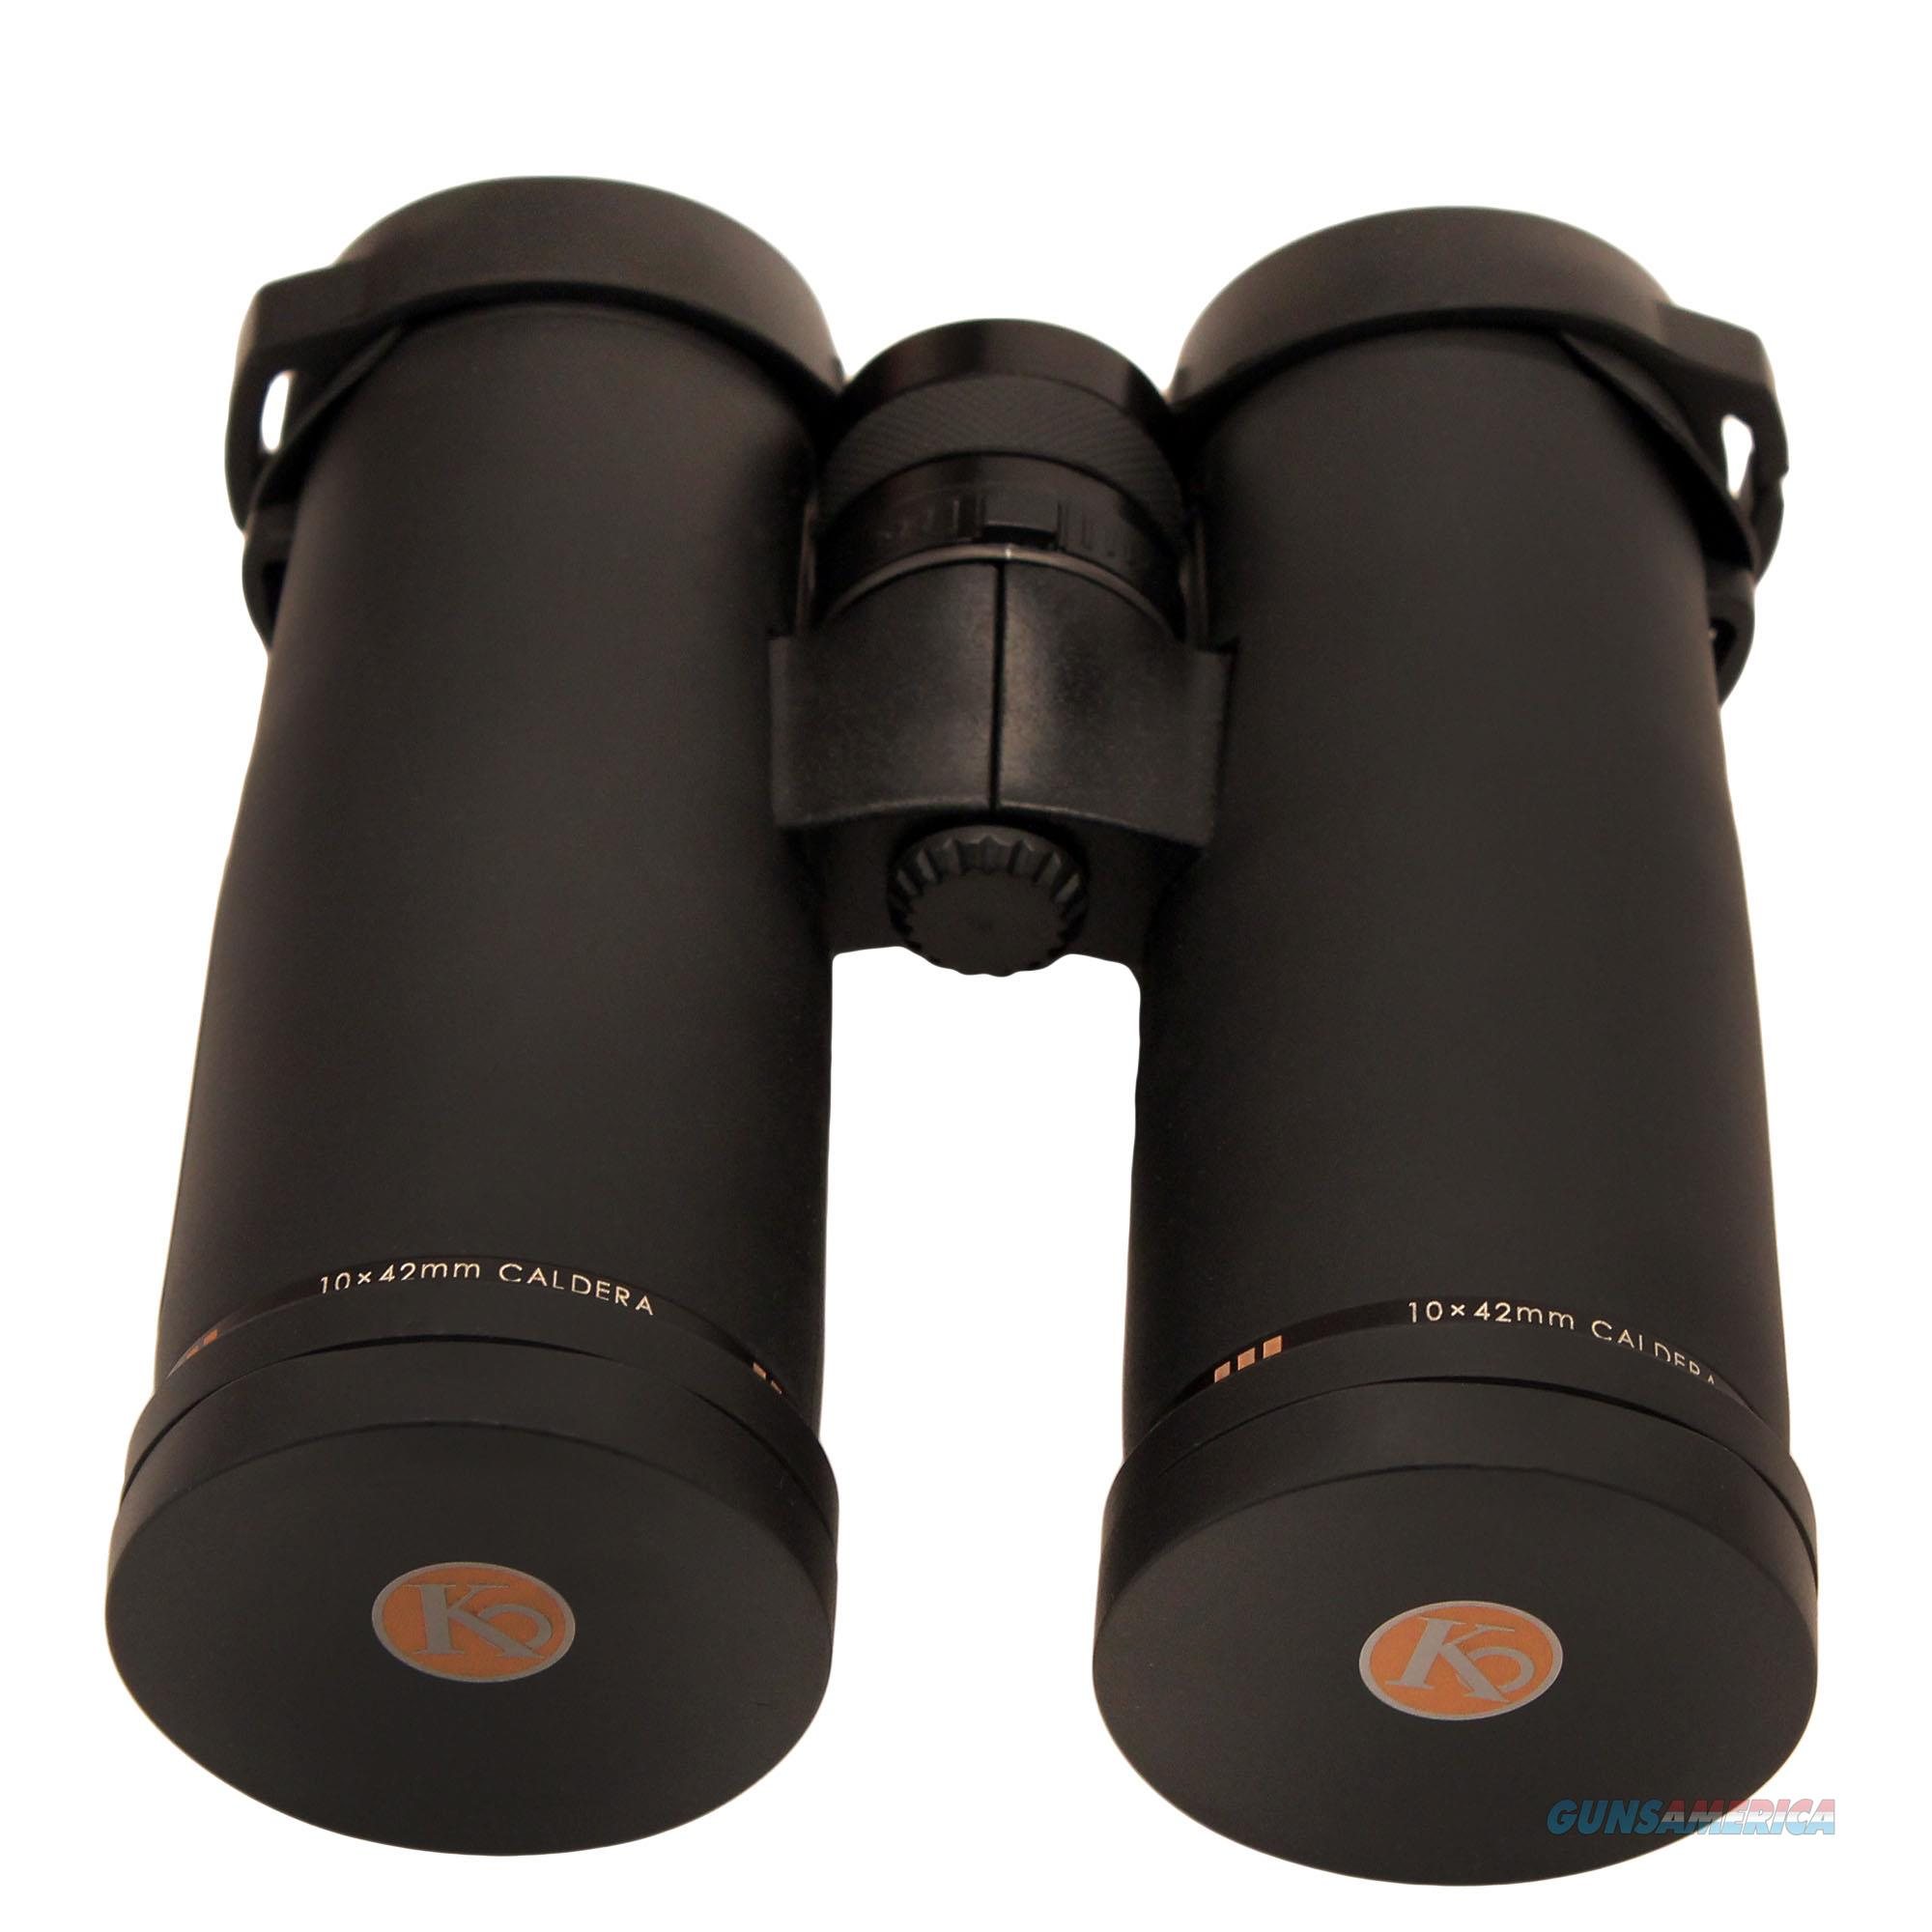 Kruger Optical Calderra Single Hinge Extra Wide Field Of View Binoculars 61311  Non-Guns > Scopes/Mounts/Rings & Optics > Non-Scope Optics > Binoculars